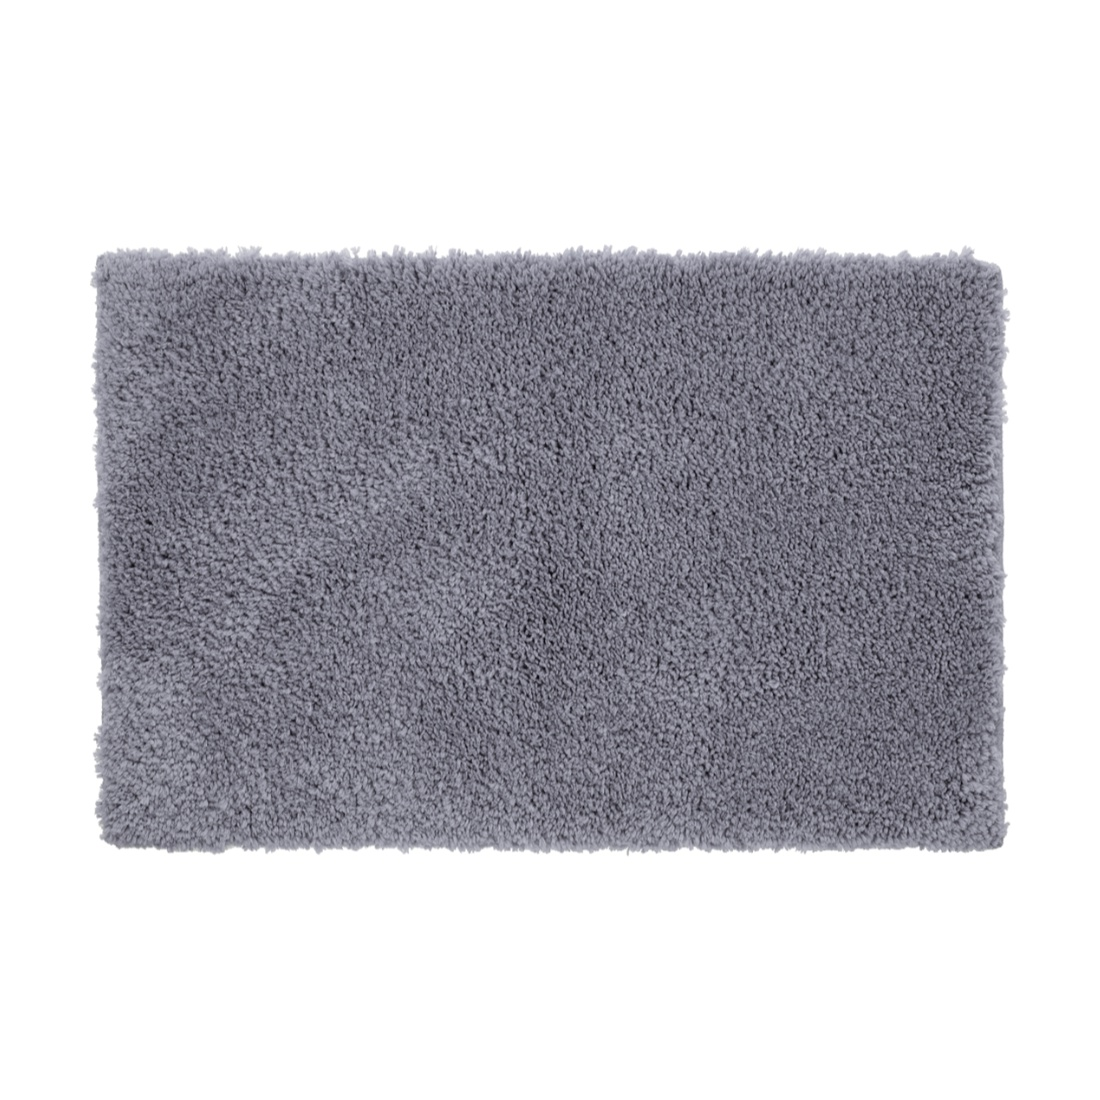 Nora Bath Mat 100% Micro Fiber 2000 Gsm Grey Micro Fibre Bath Mats in Grey Colour by Living Essence